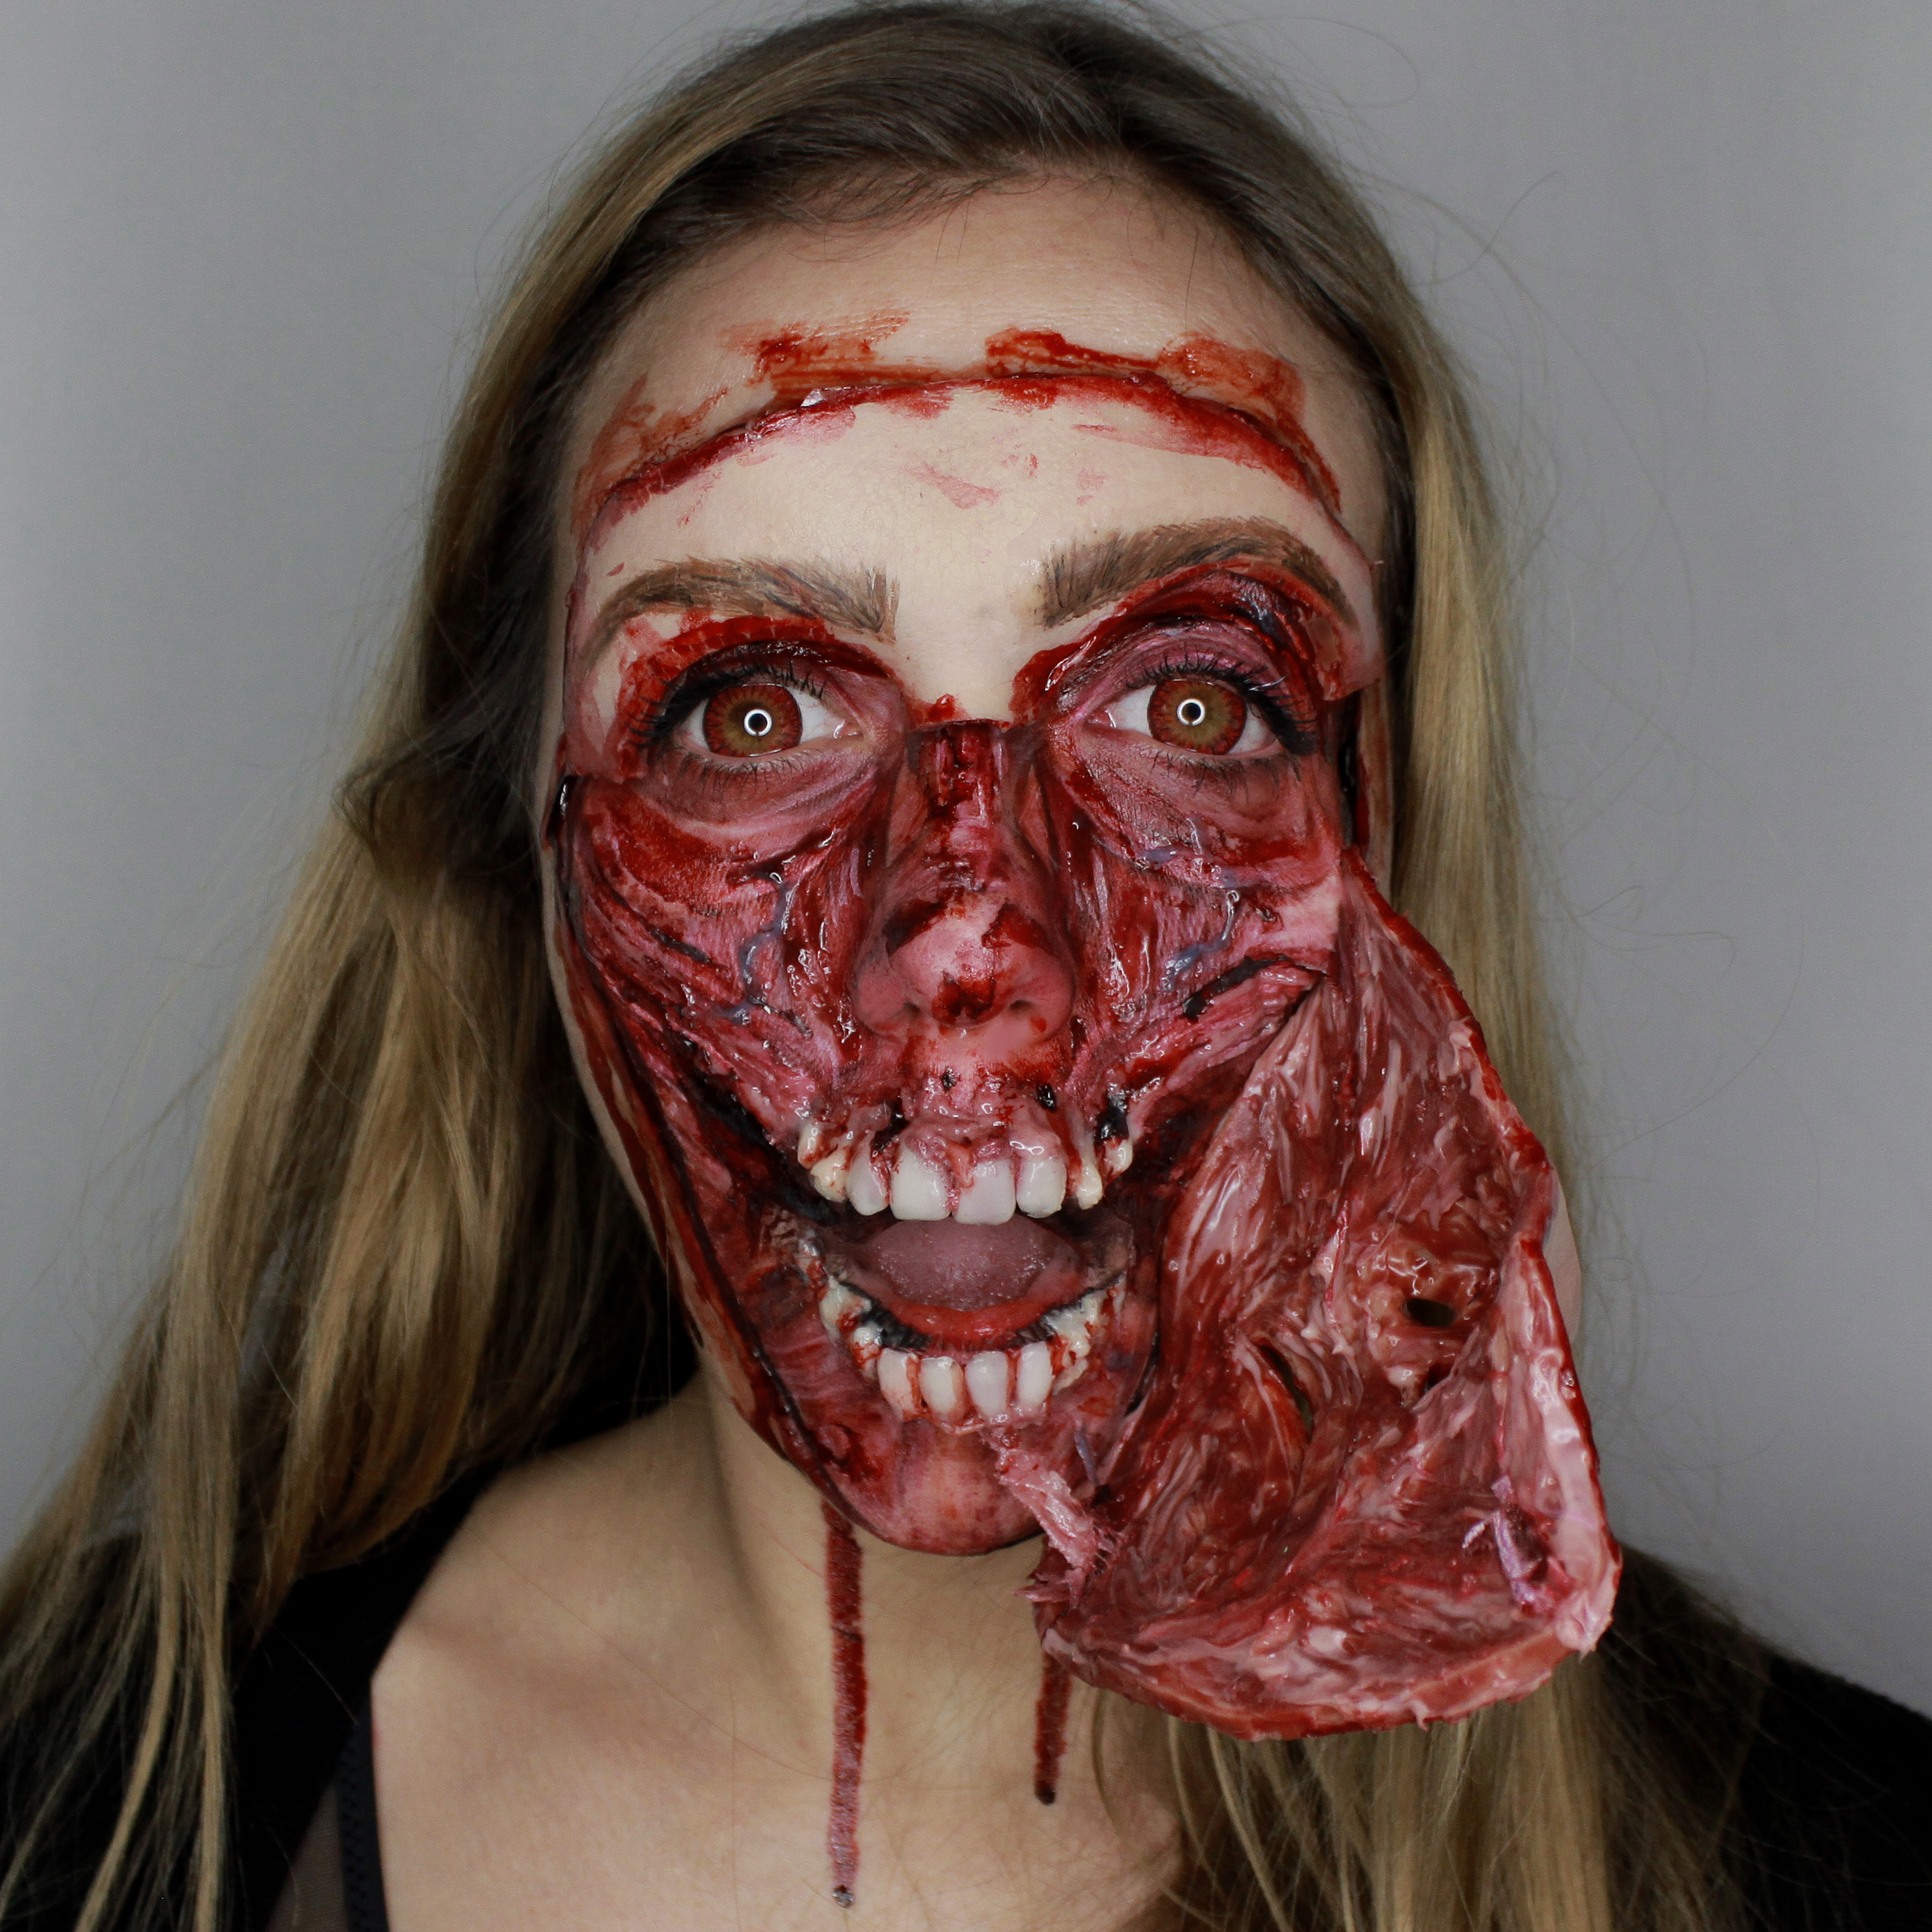 3rd entry character makeup contest skinned horror face  Stan Winston School of Character